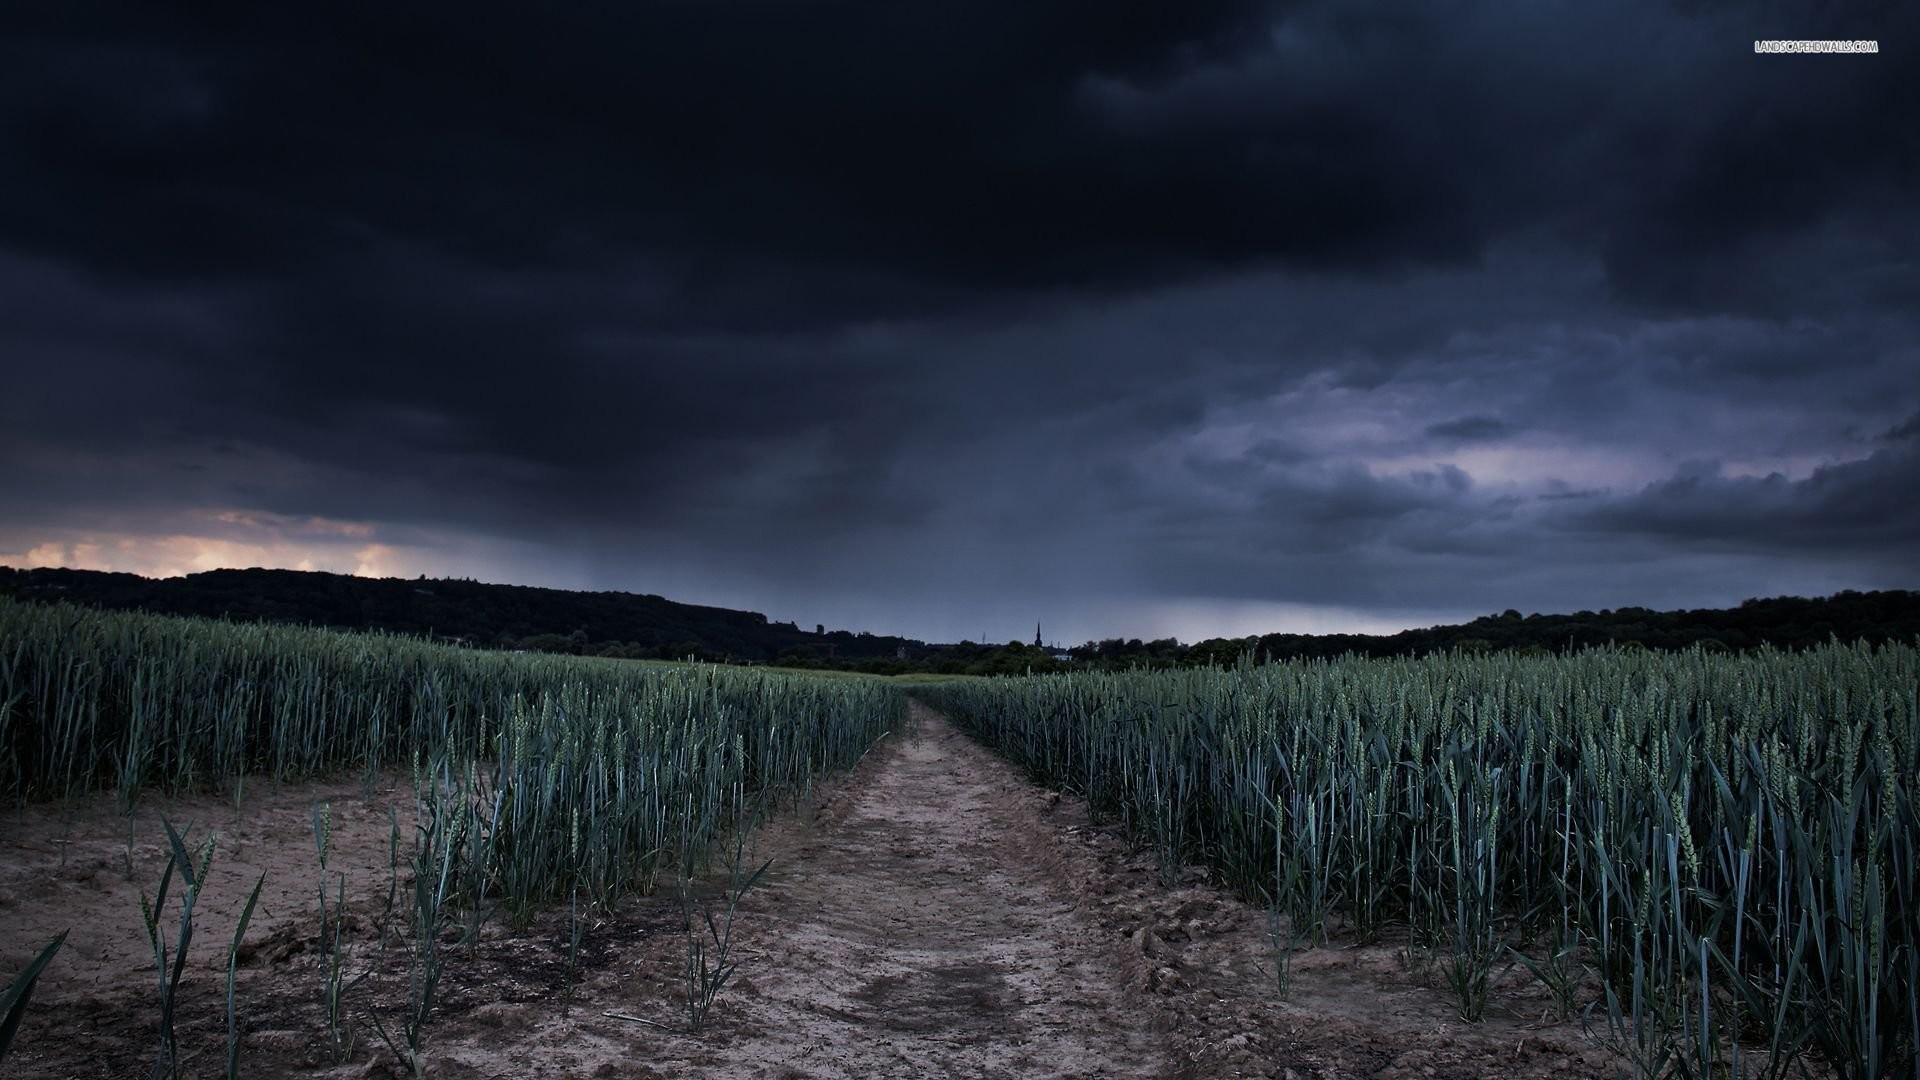 Wheat Field Under The Stormy Sky